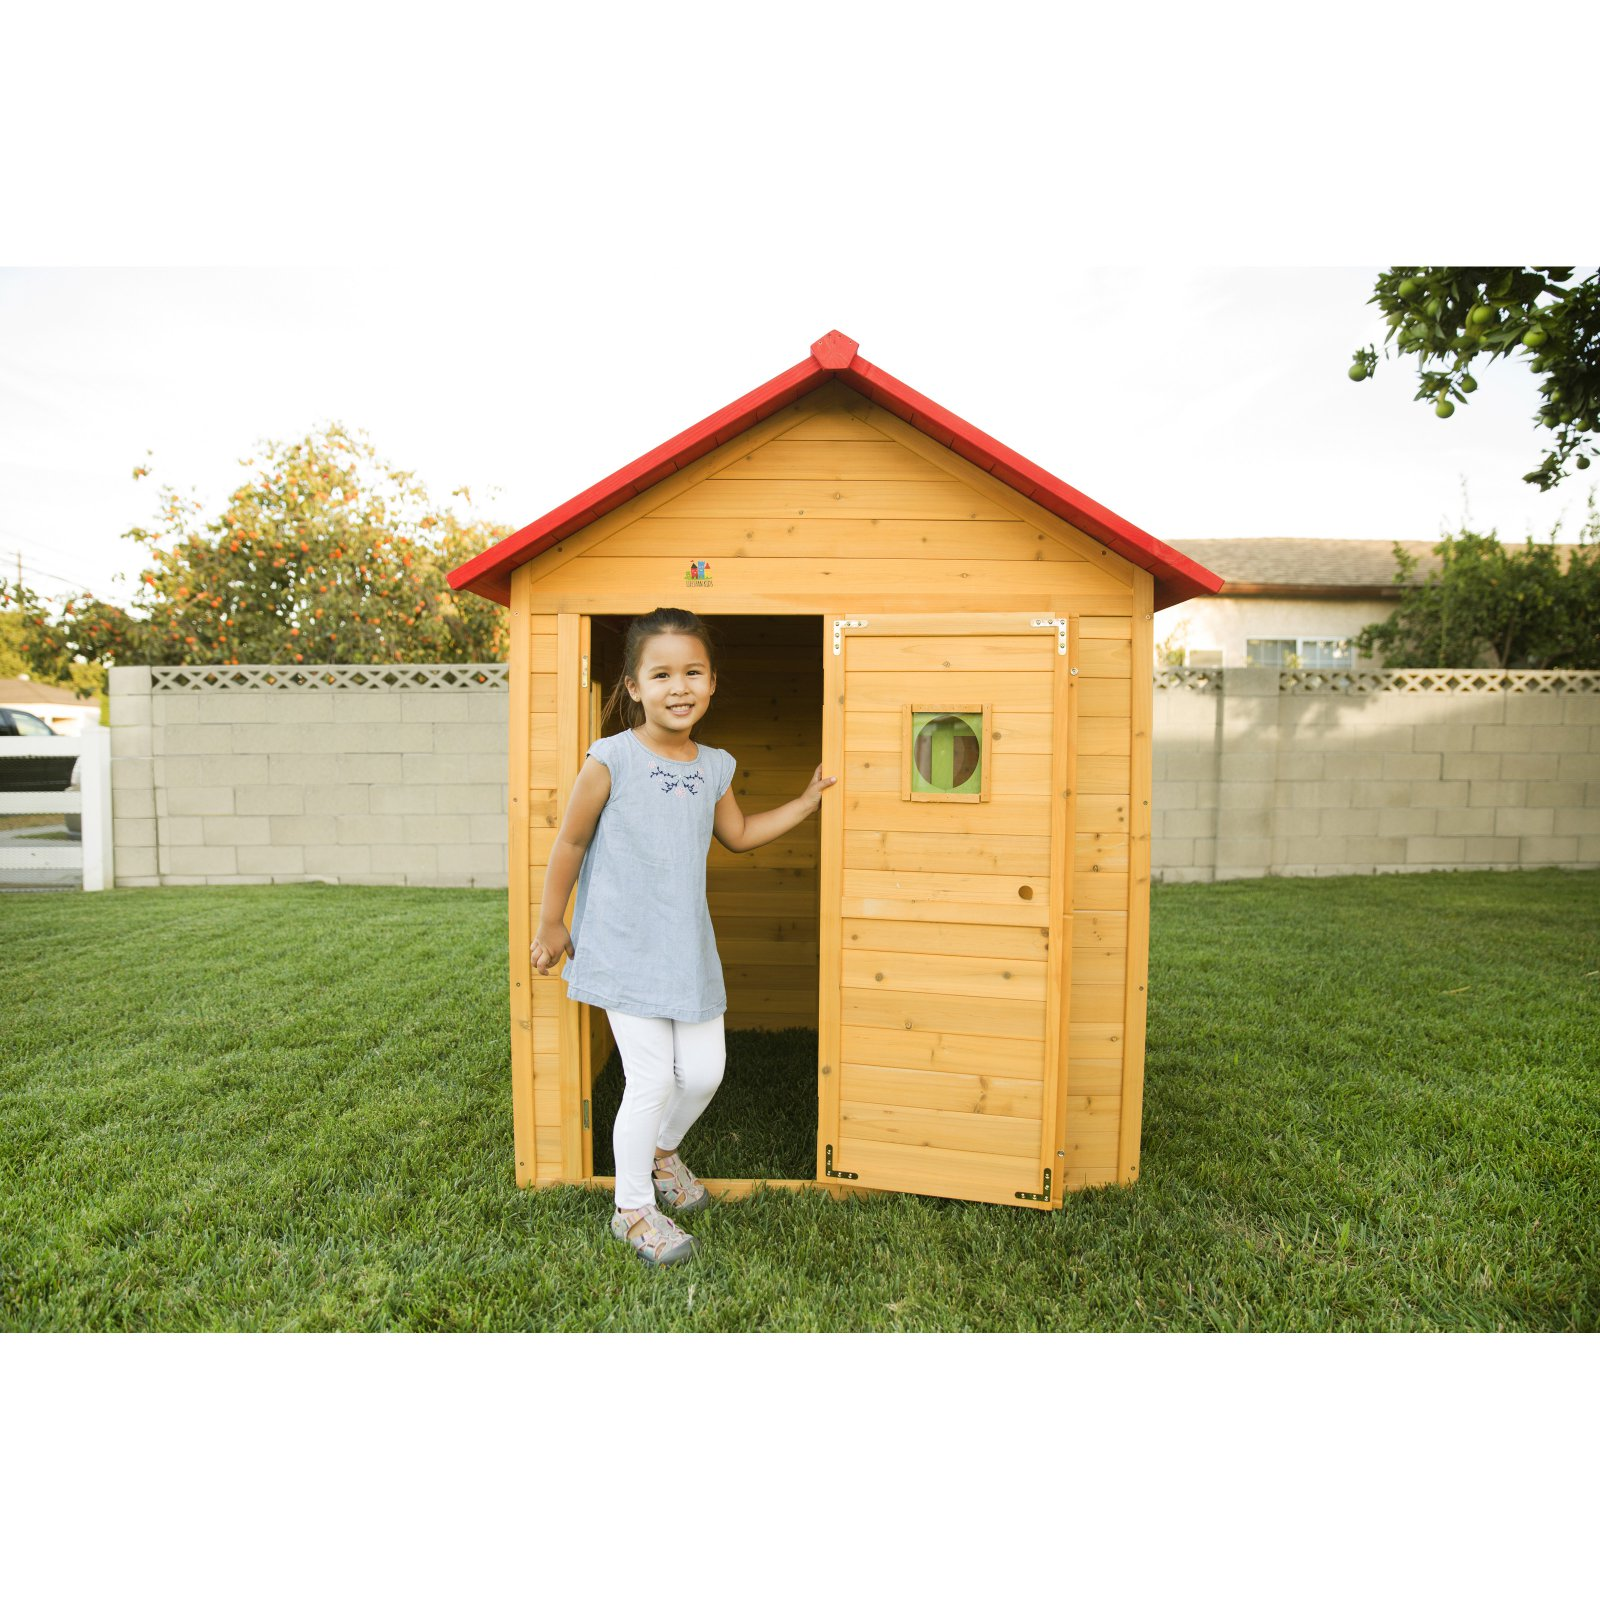 Outward Play Badger Cubby Wooden Playhouse